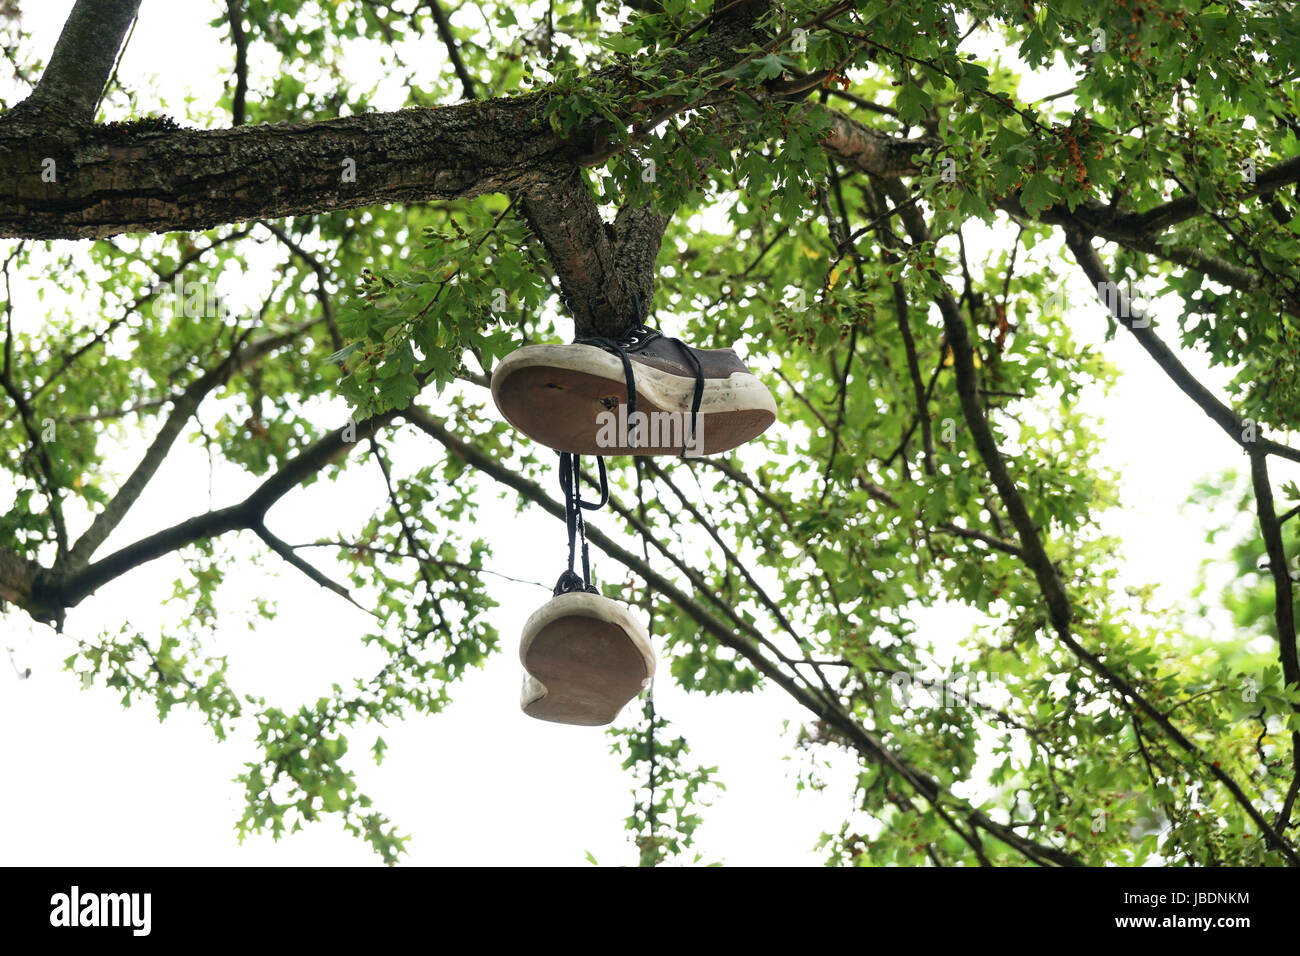 canvas shoes hanging from tree branch - Stock Image